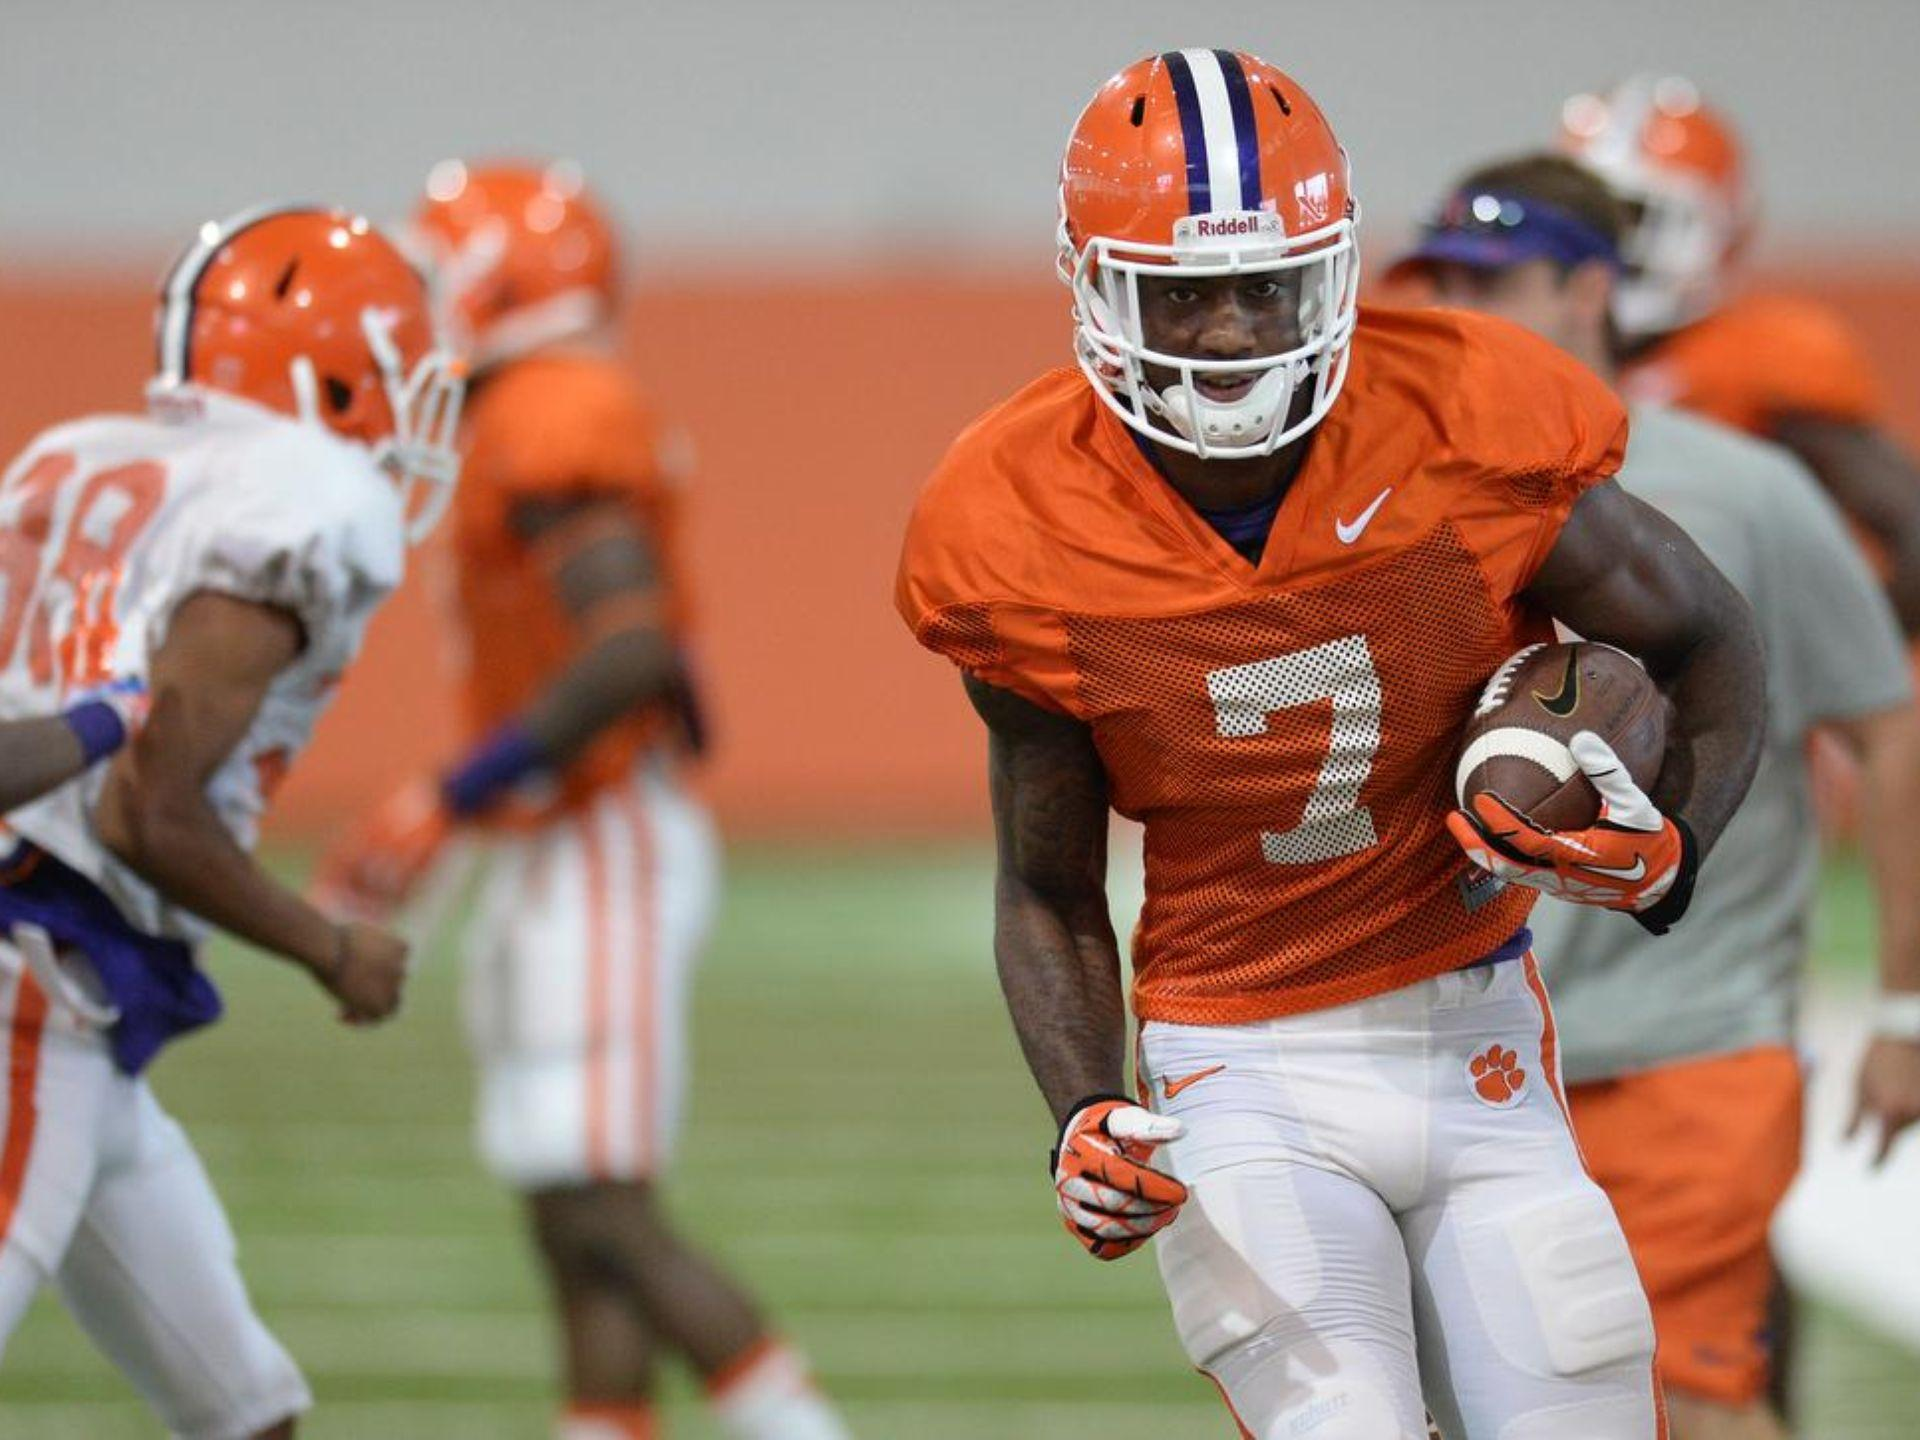 Mike Williams makes a move after a making a catch during Clemson's morning practice session Monday.